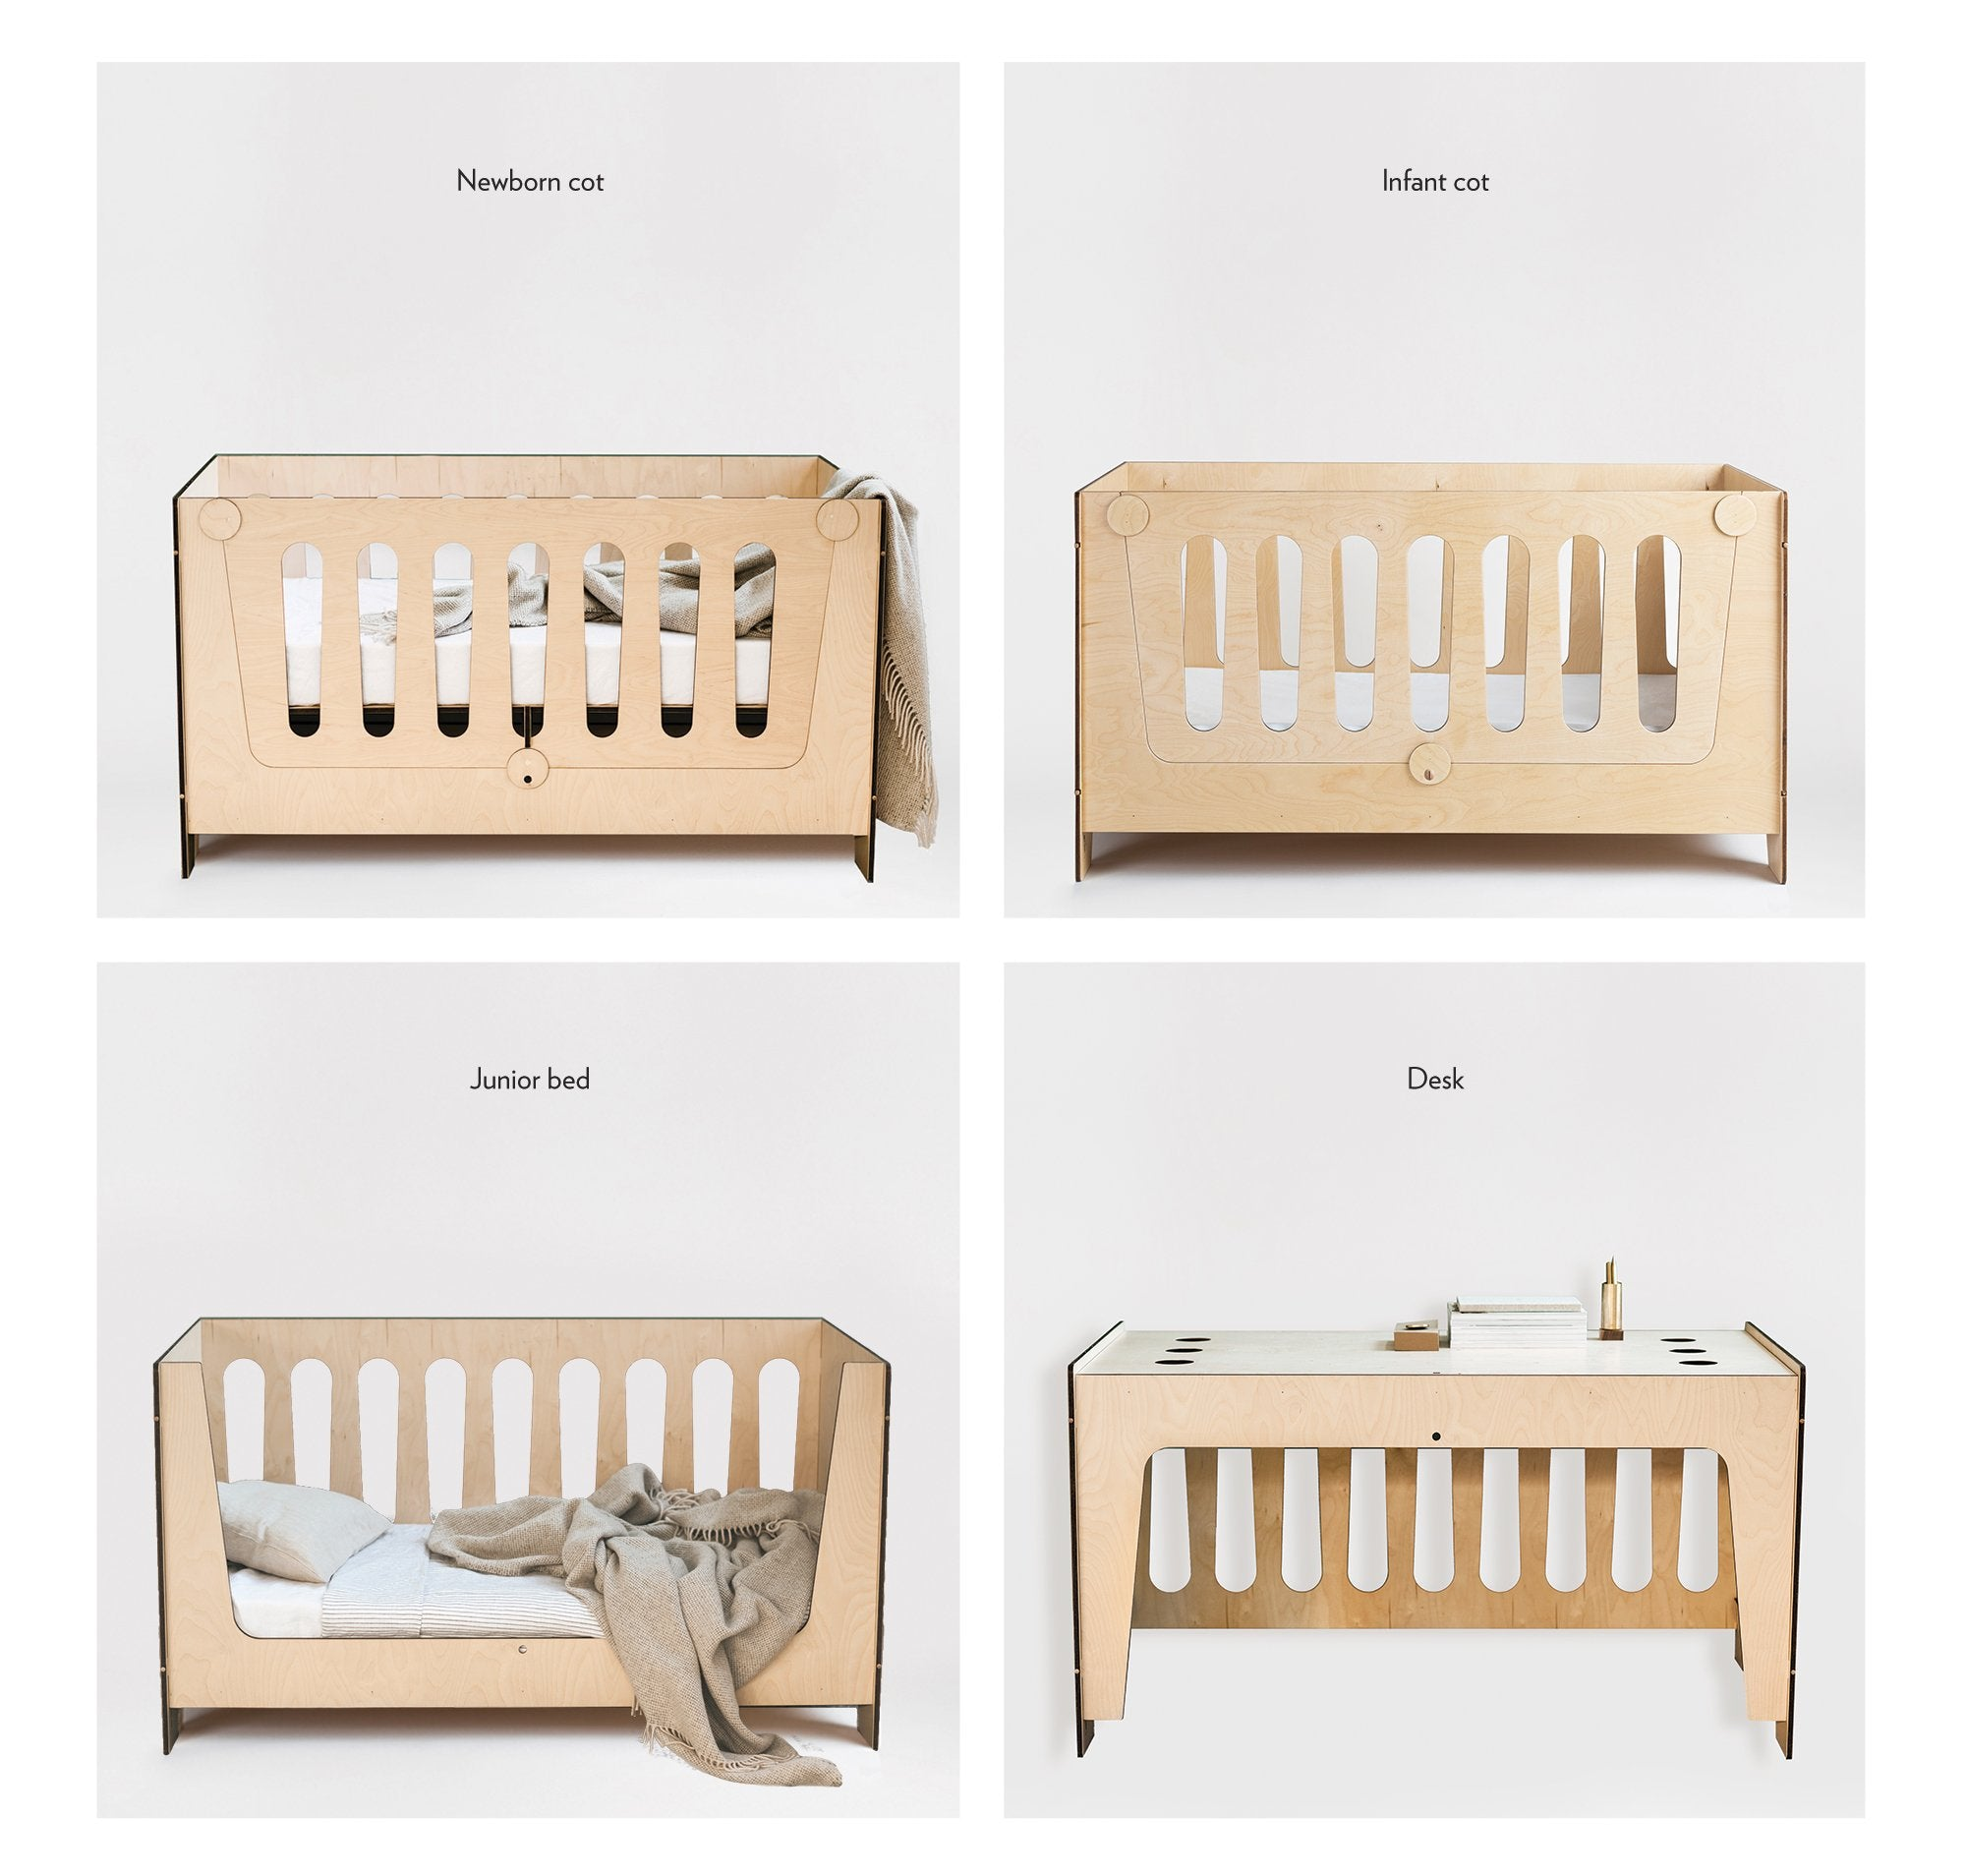 Plyroom Ava Lifestages Cot